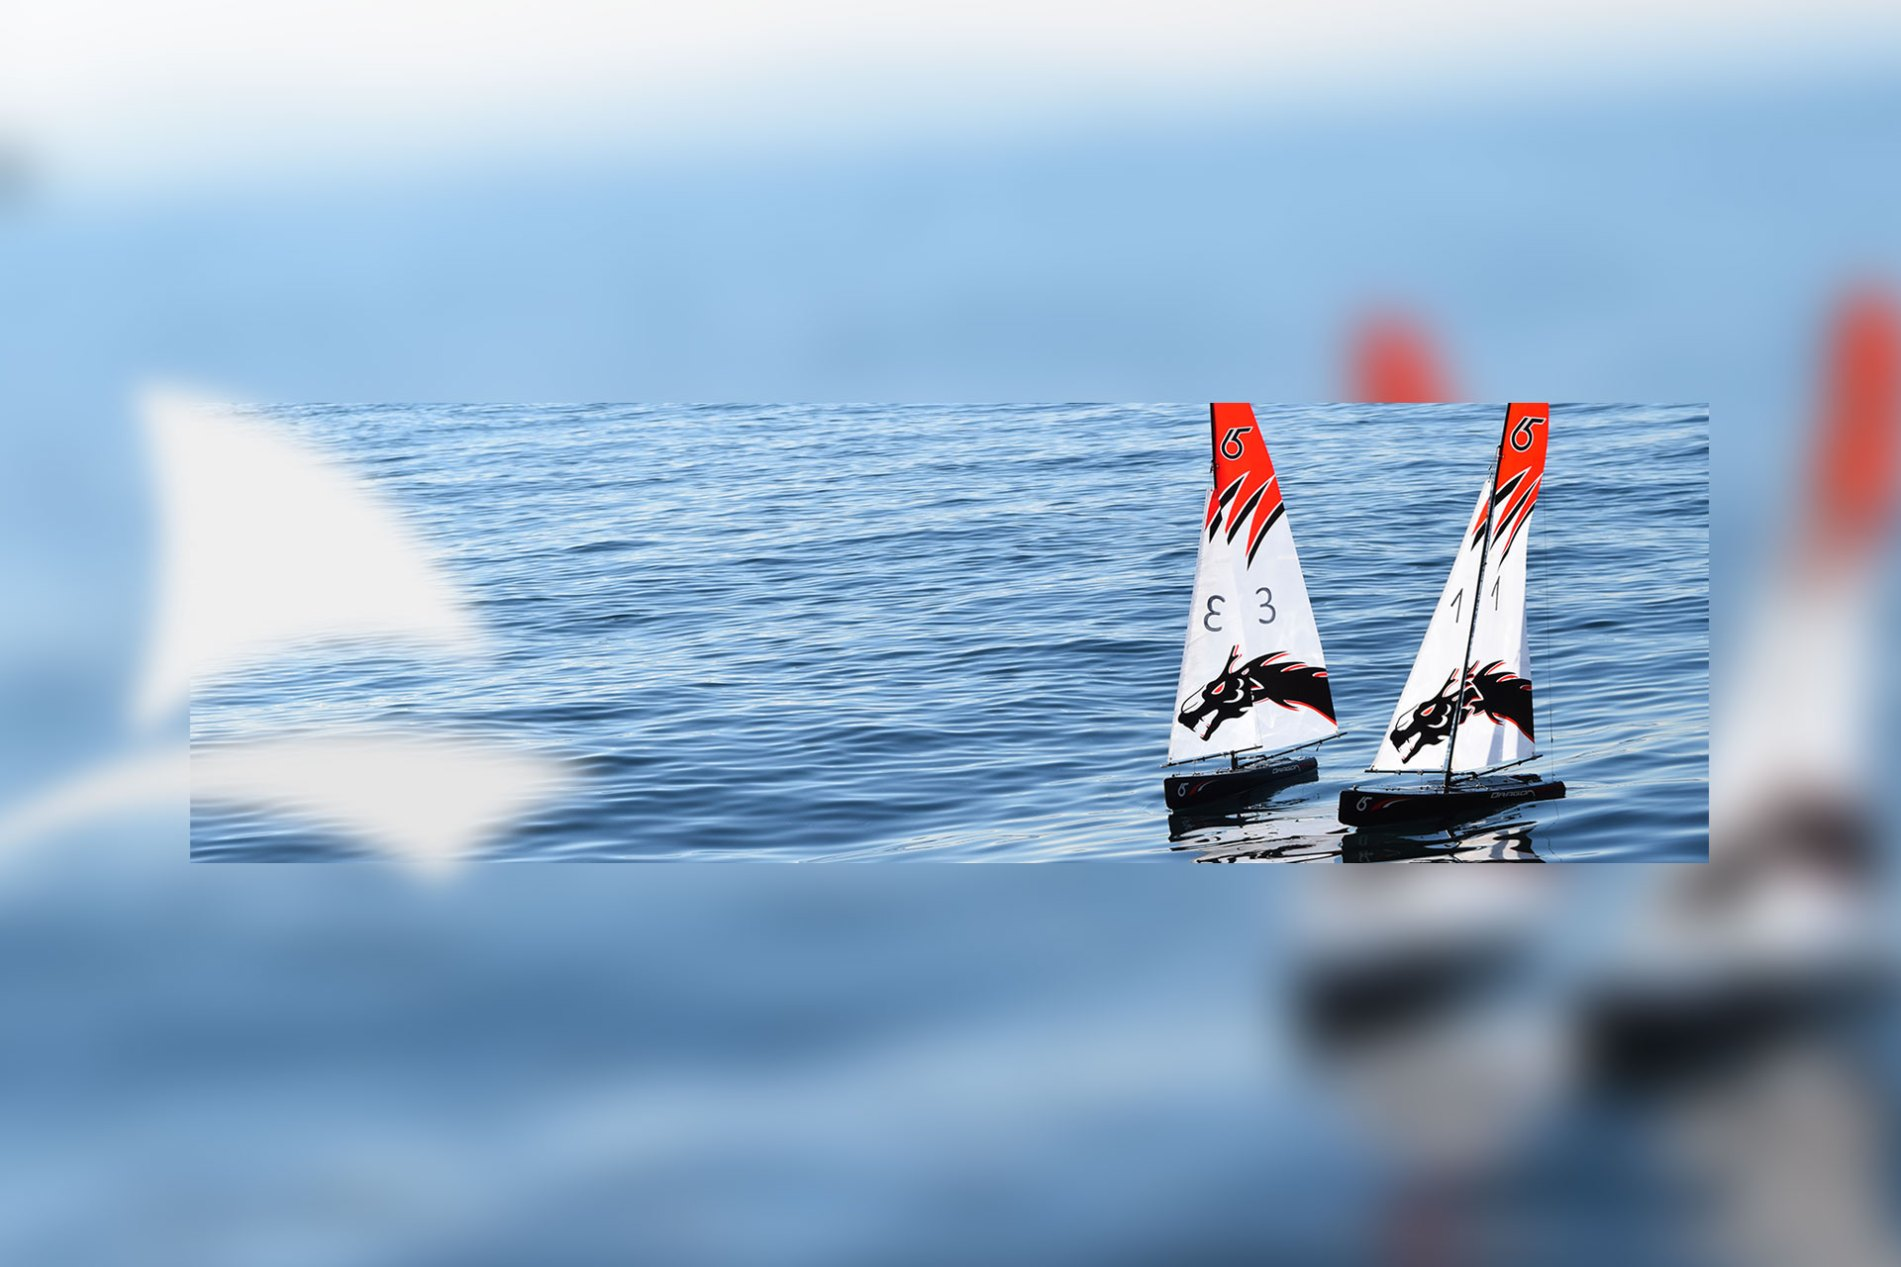 Sailboat RC - Your passion is our profession!